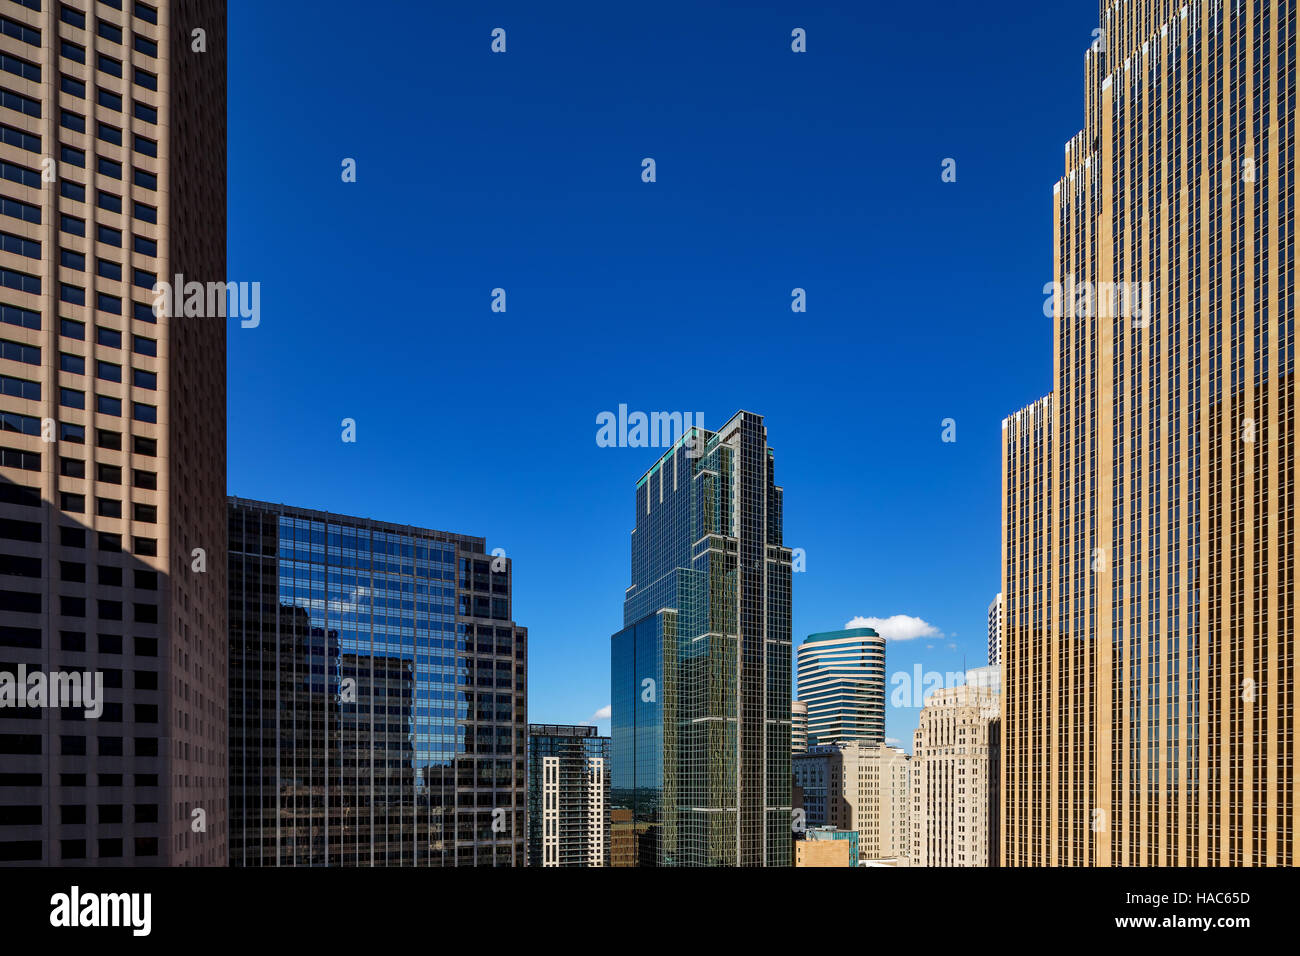 An abstract view of the city architecture of Minneapolis, MN, USA - Stock Image